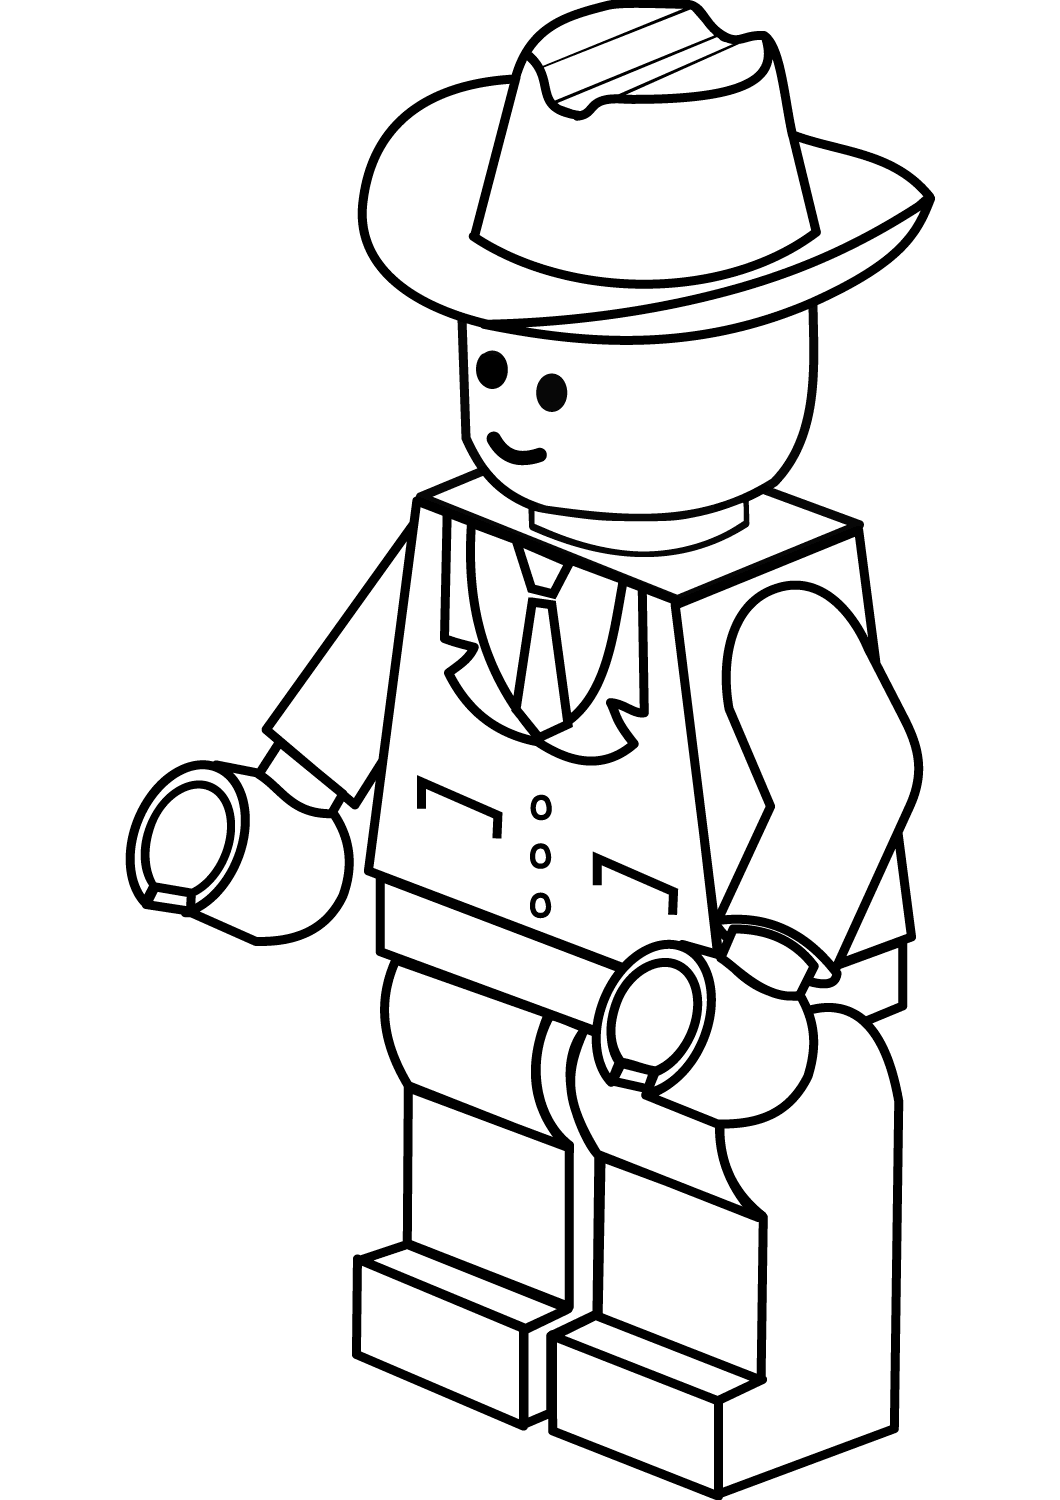 Lego Man Coloring Pages Free Lego Coloring Lego Coloring Pages Lego Coloring Sheet